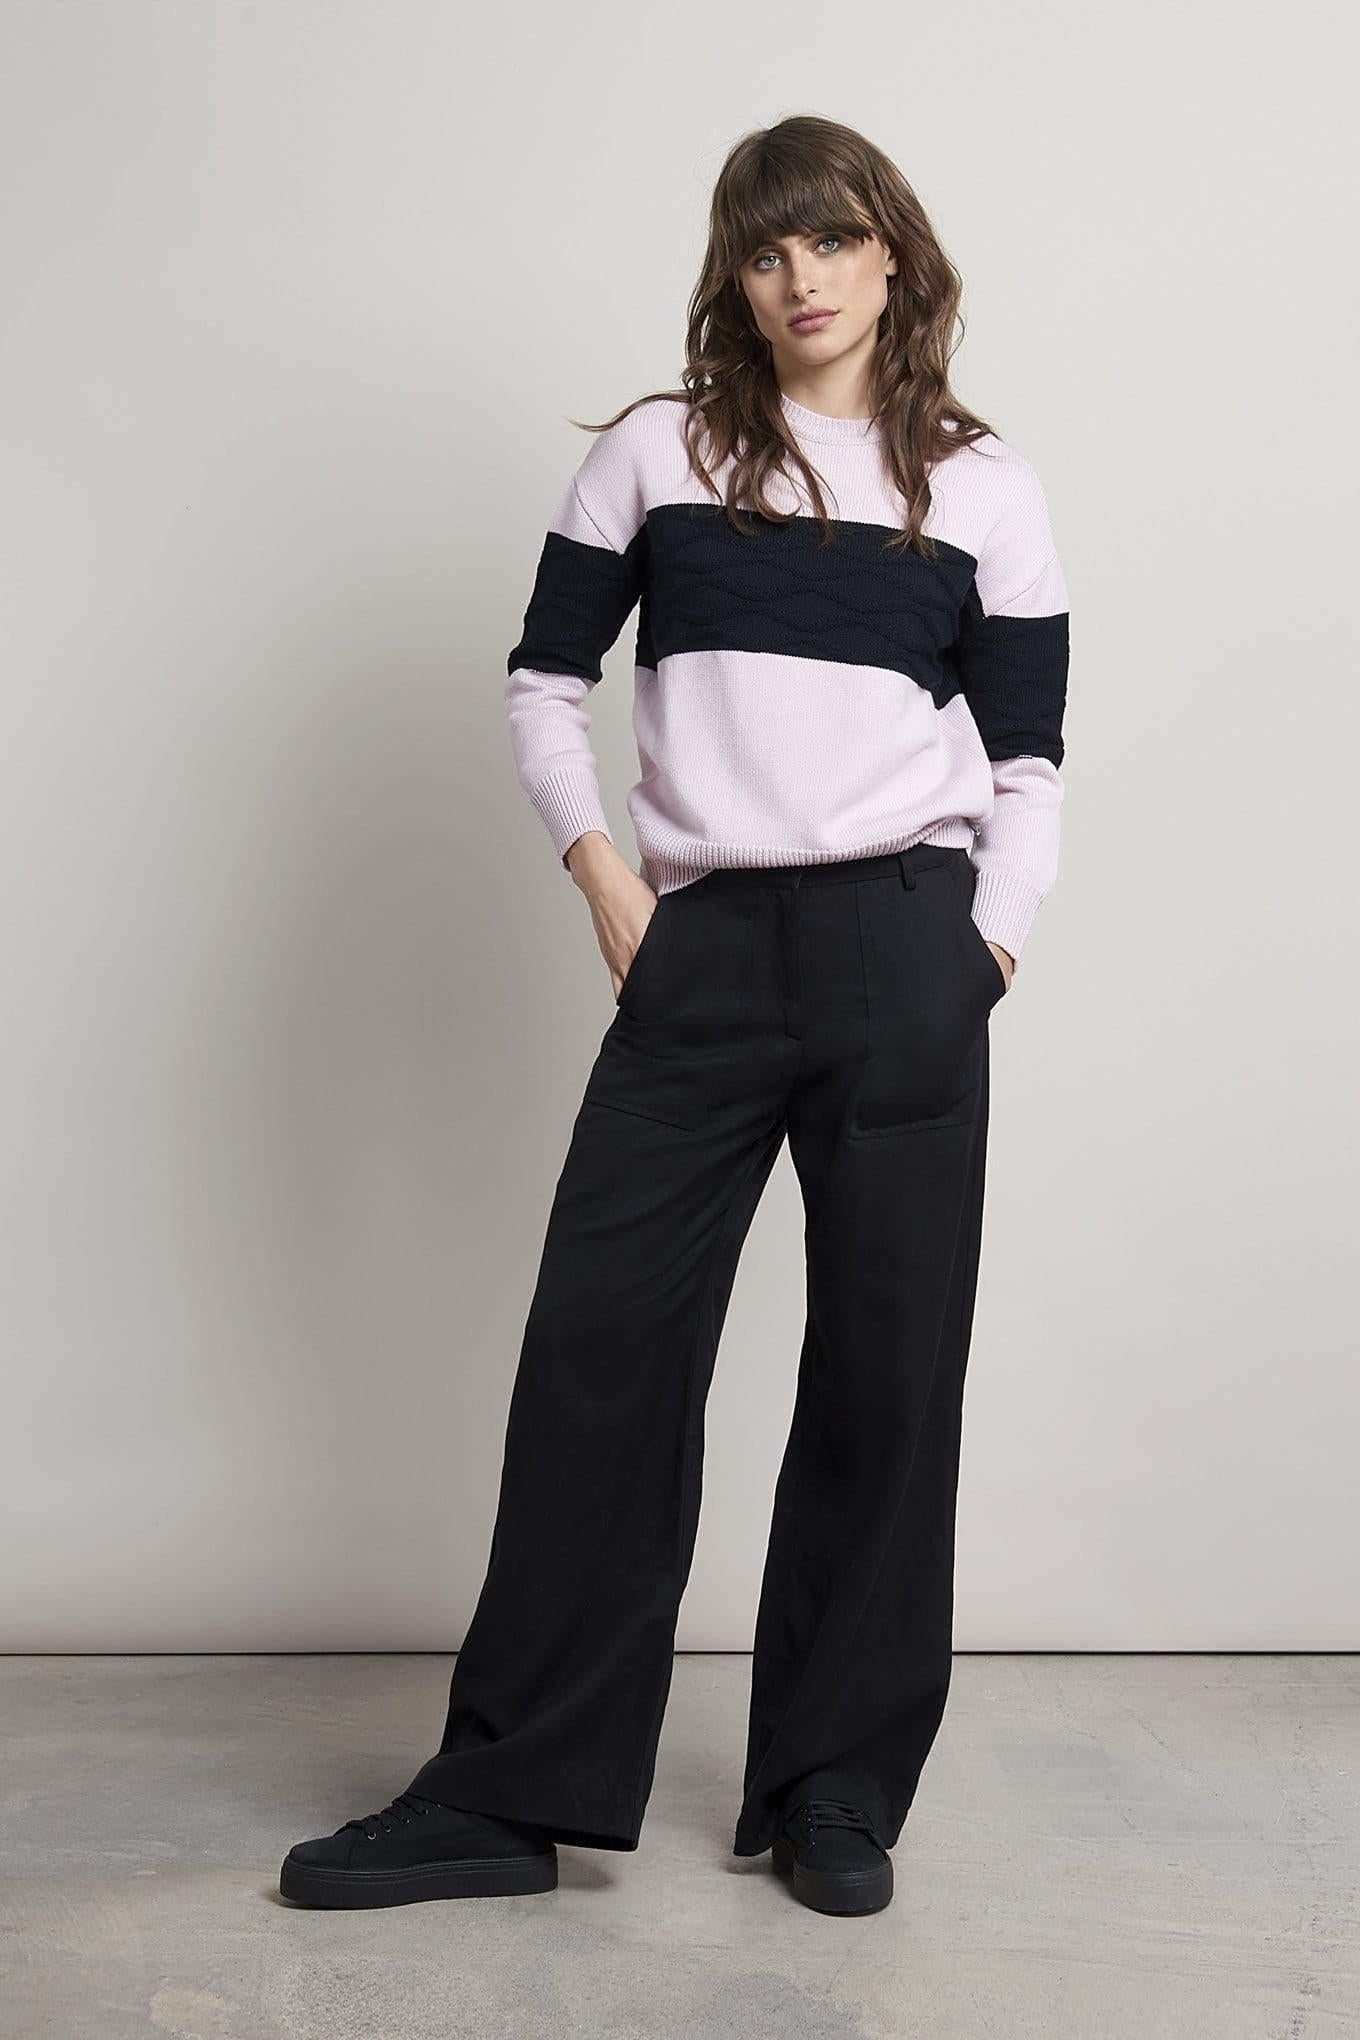 KOMODO pant FISHER Wide Trousers. Tencel and Linen. sustainable fashion ethical fashion